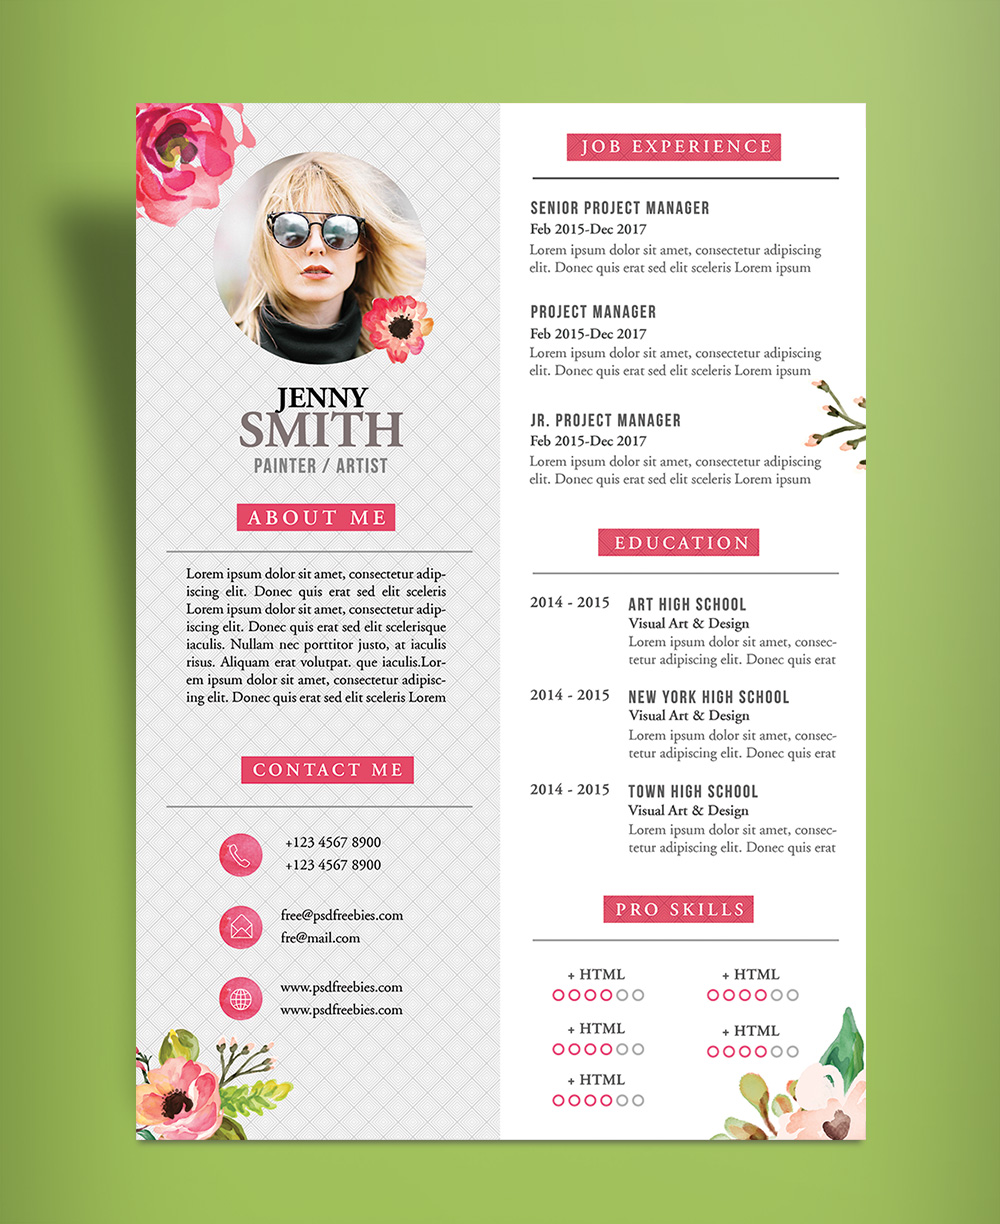 Free-Artistic-Resume-(CV)-Design-Template-PSD-File-2